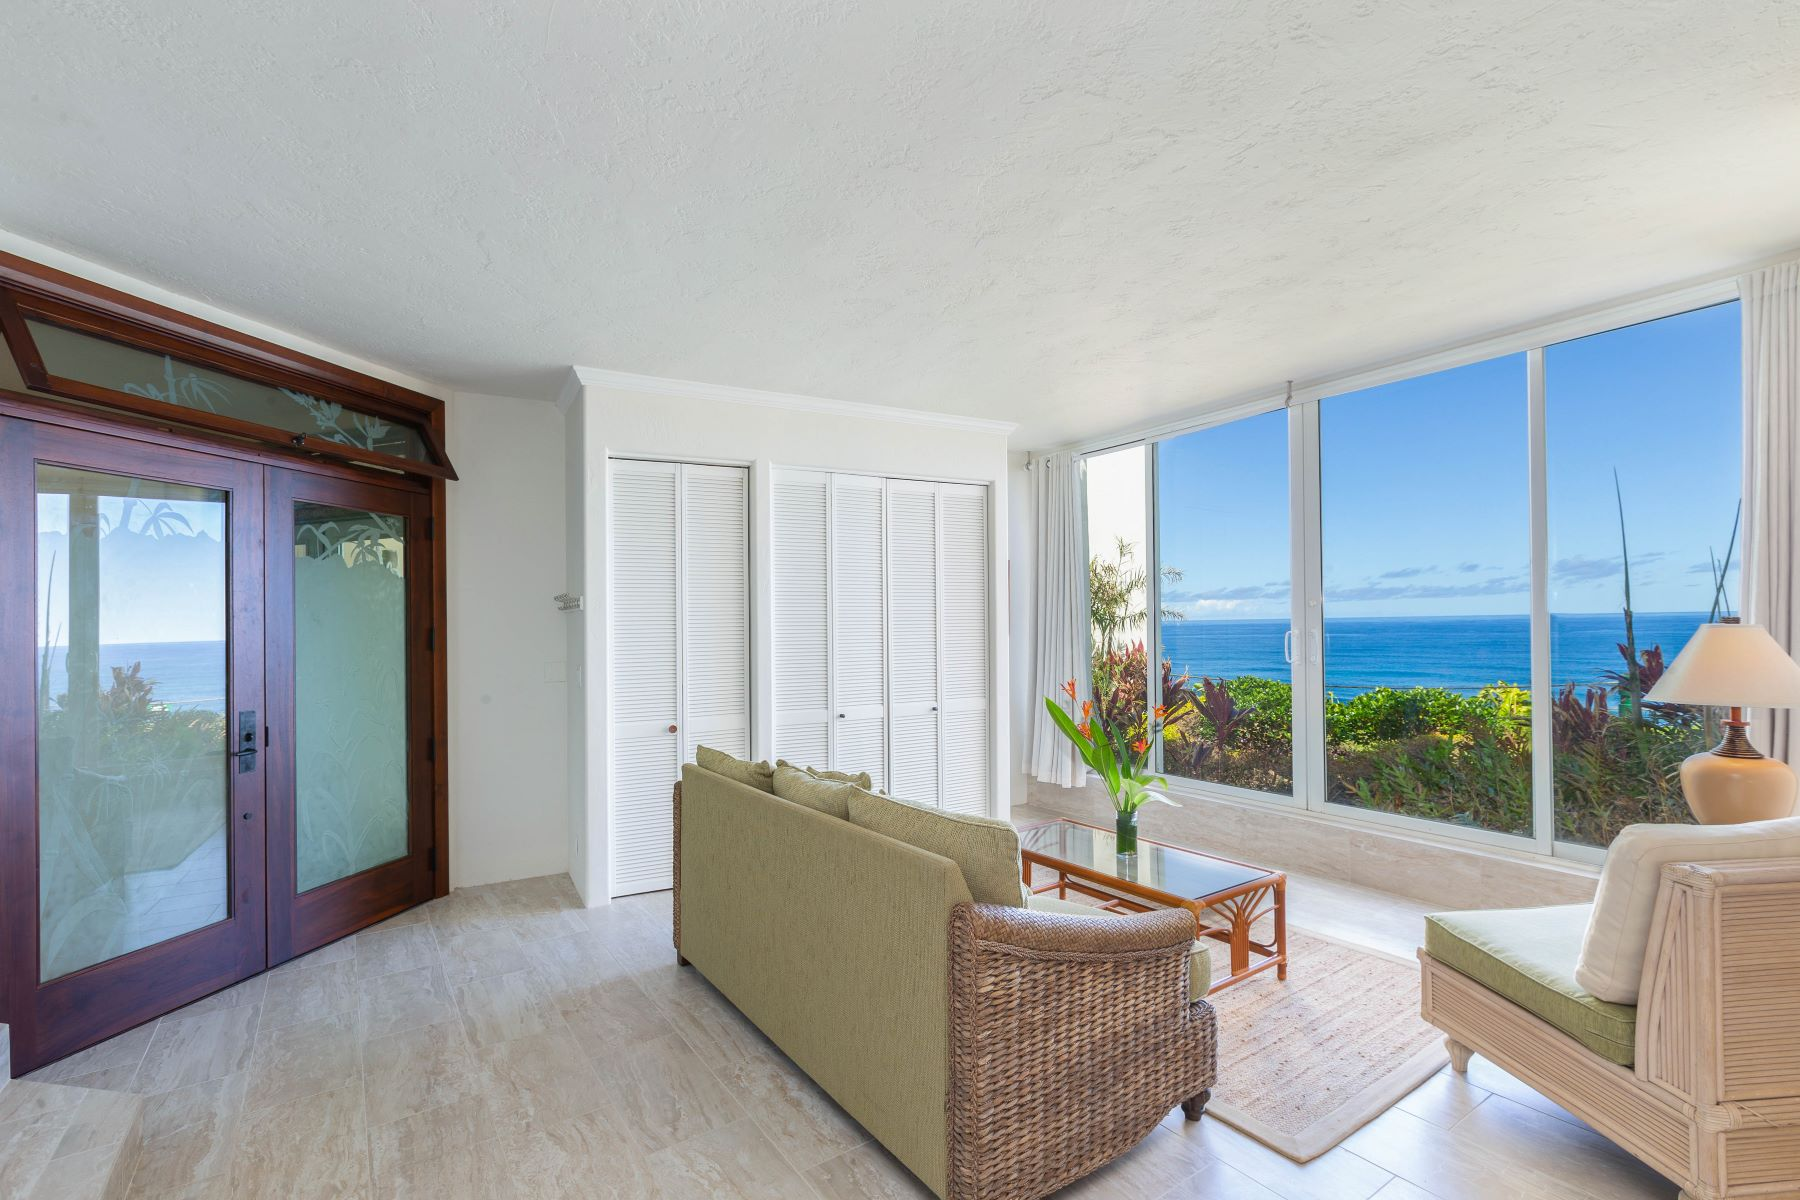 Condominiums 용 매매 에 Condo with Beautiful Ocean View Located in Princeville on Kauai's North Shore 5454 Ka Haku Road Puu Poa, #114, Princeville, 하와이 96722 미국